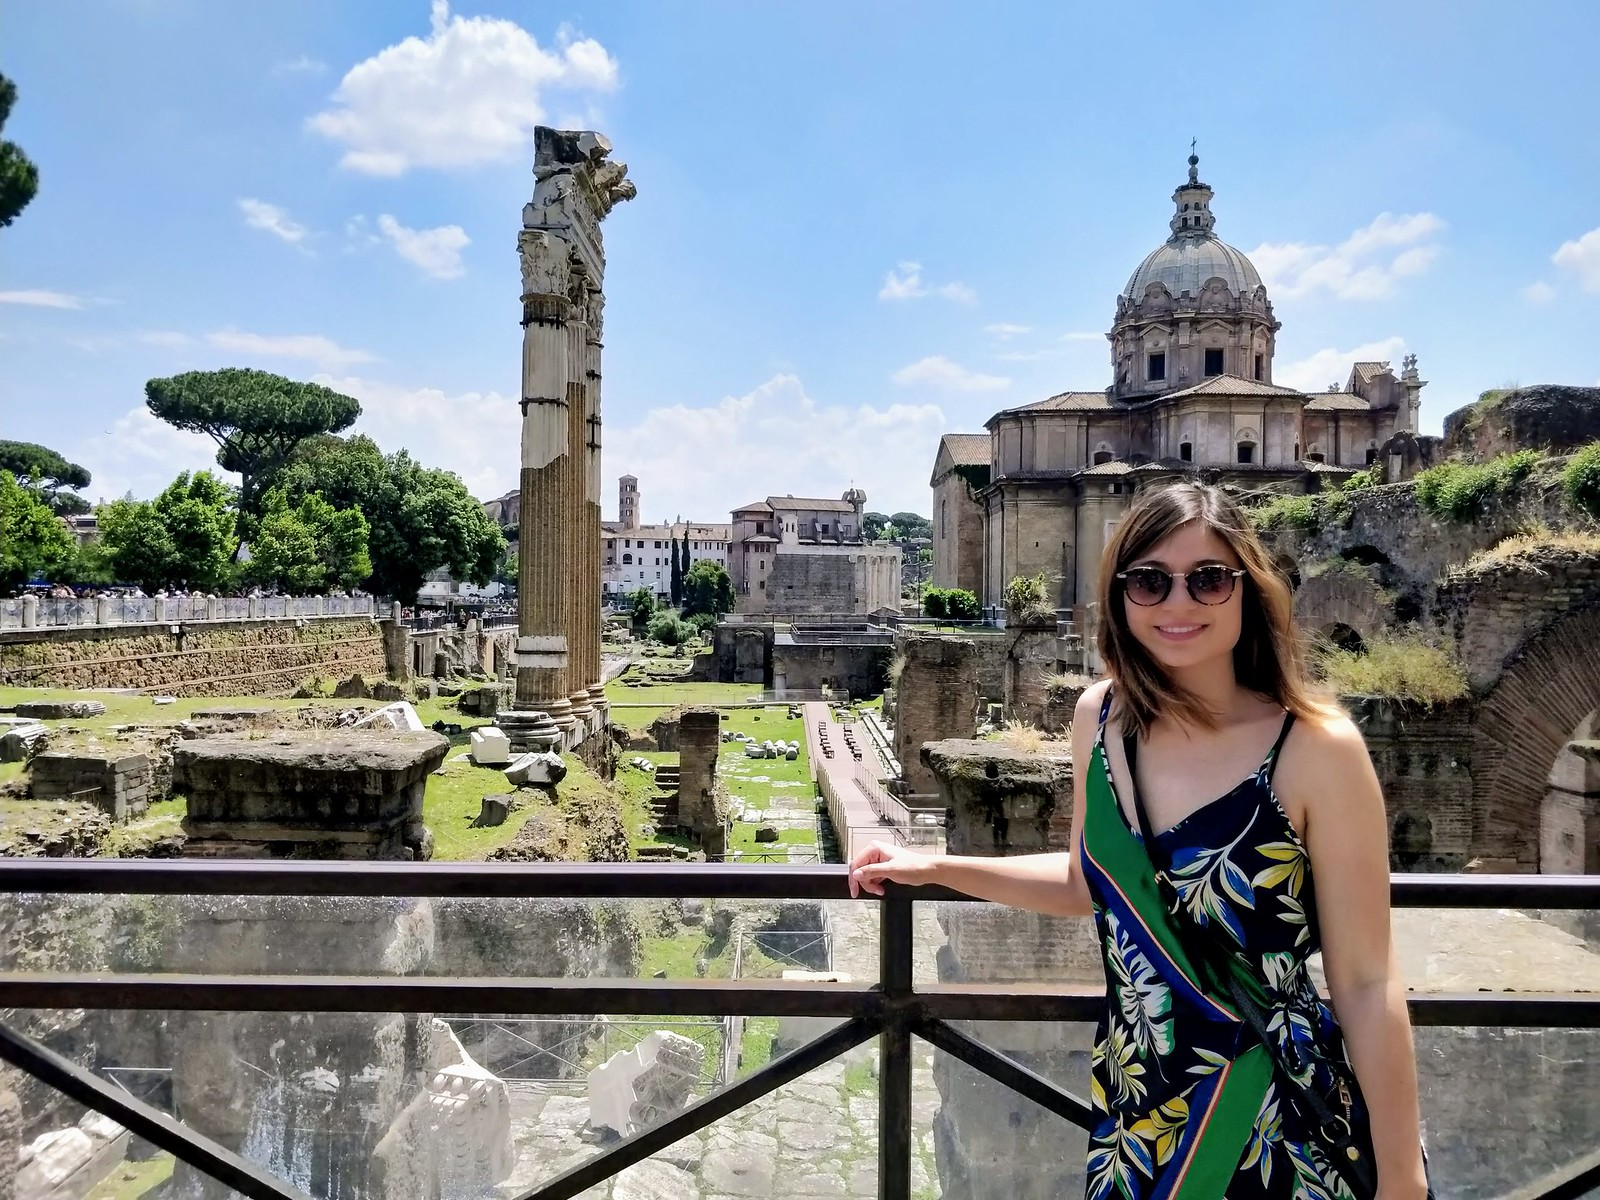 Me at the Fori Imperiali